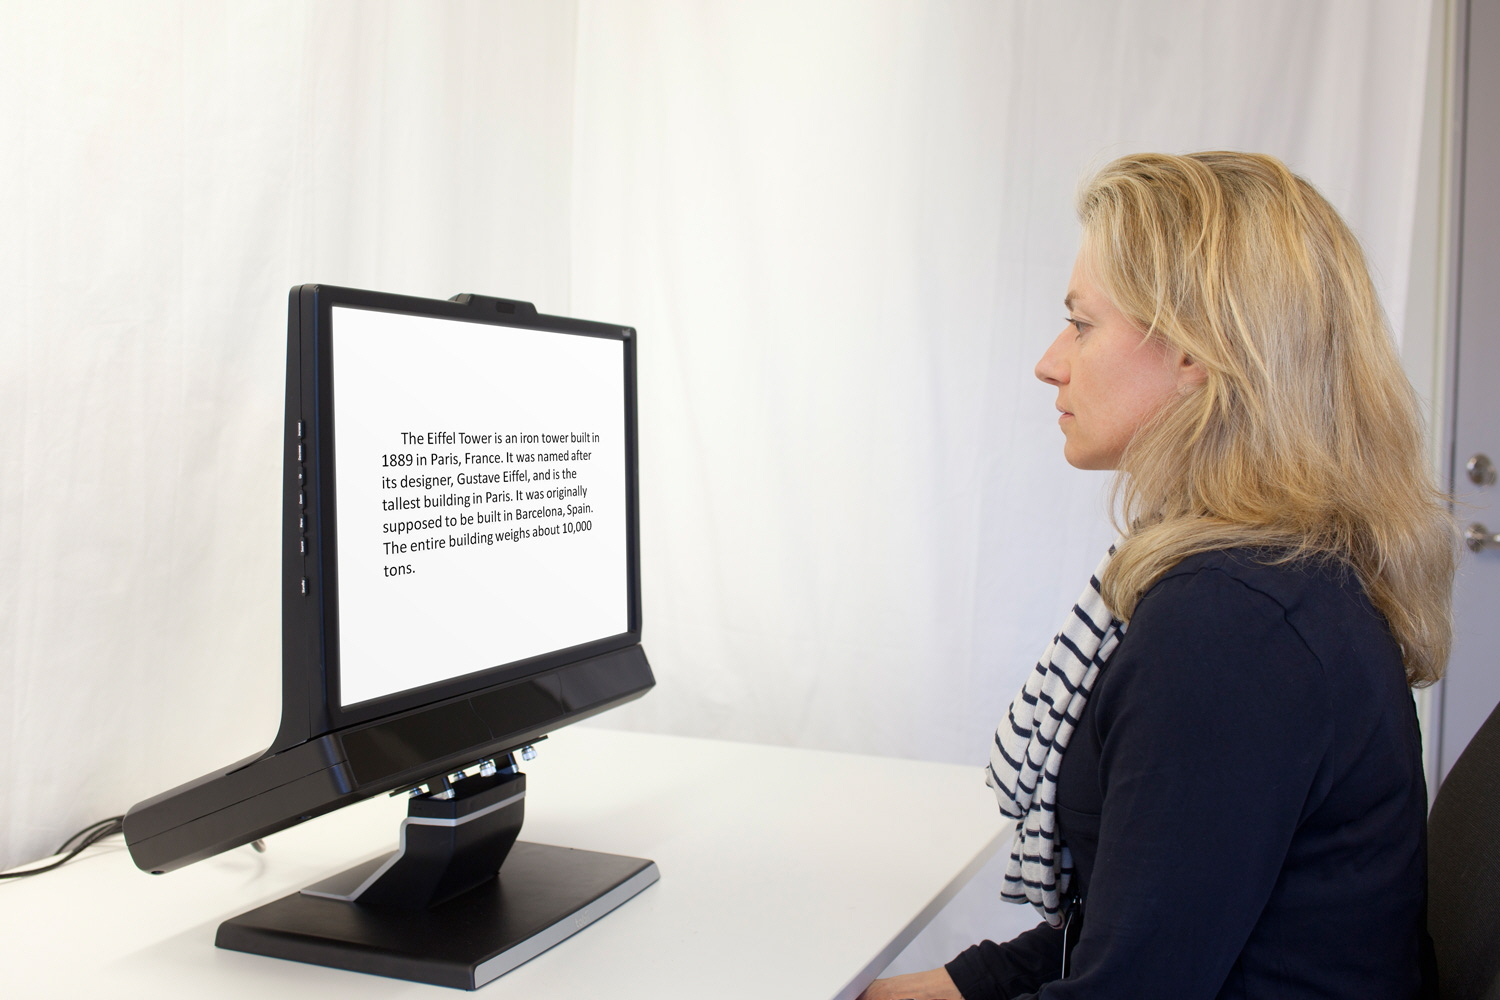 A woman reading a text displayed on the screen of the Tobii Pro TX300